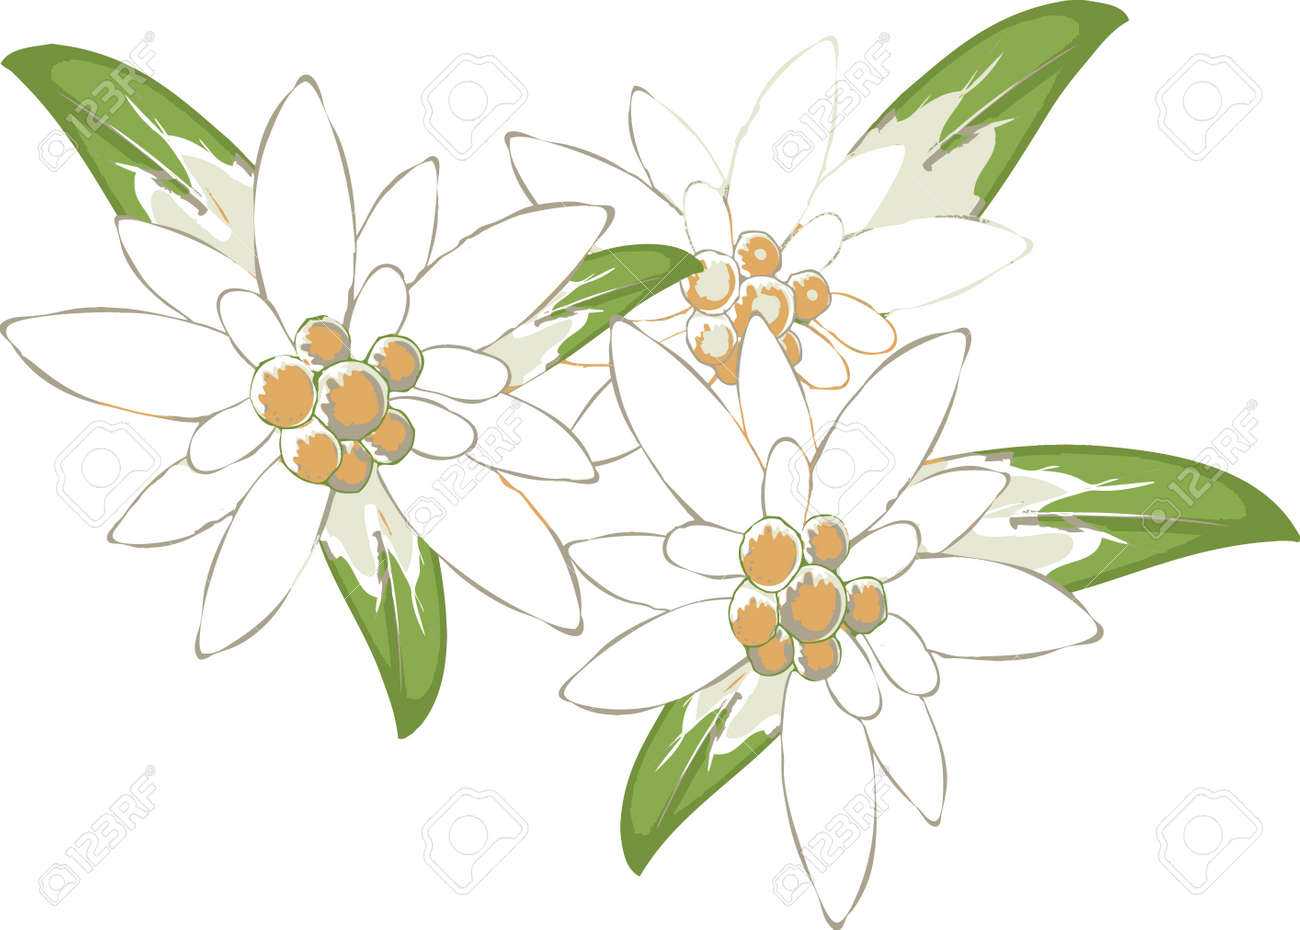 Popolare Edelweiss Royalty Free Cliparts, Vectors, And Stock Illustration  PN36